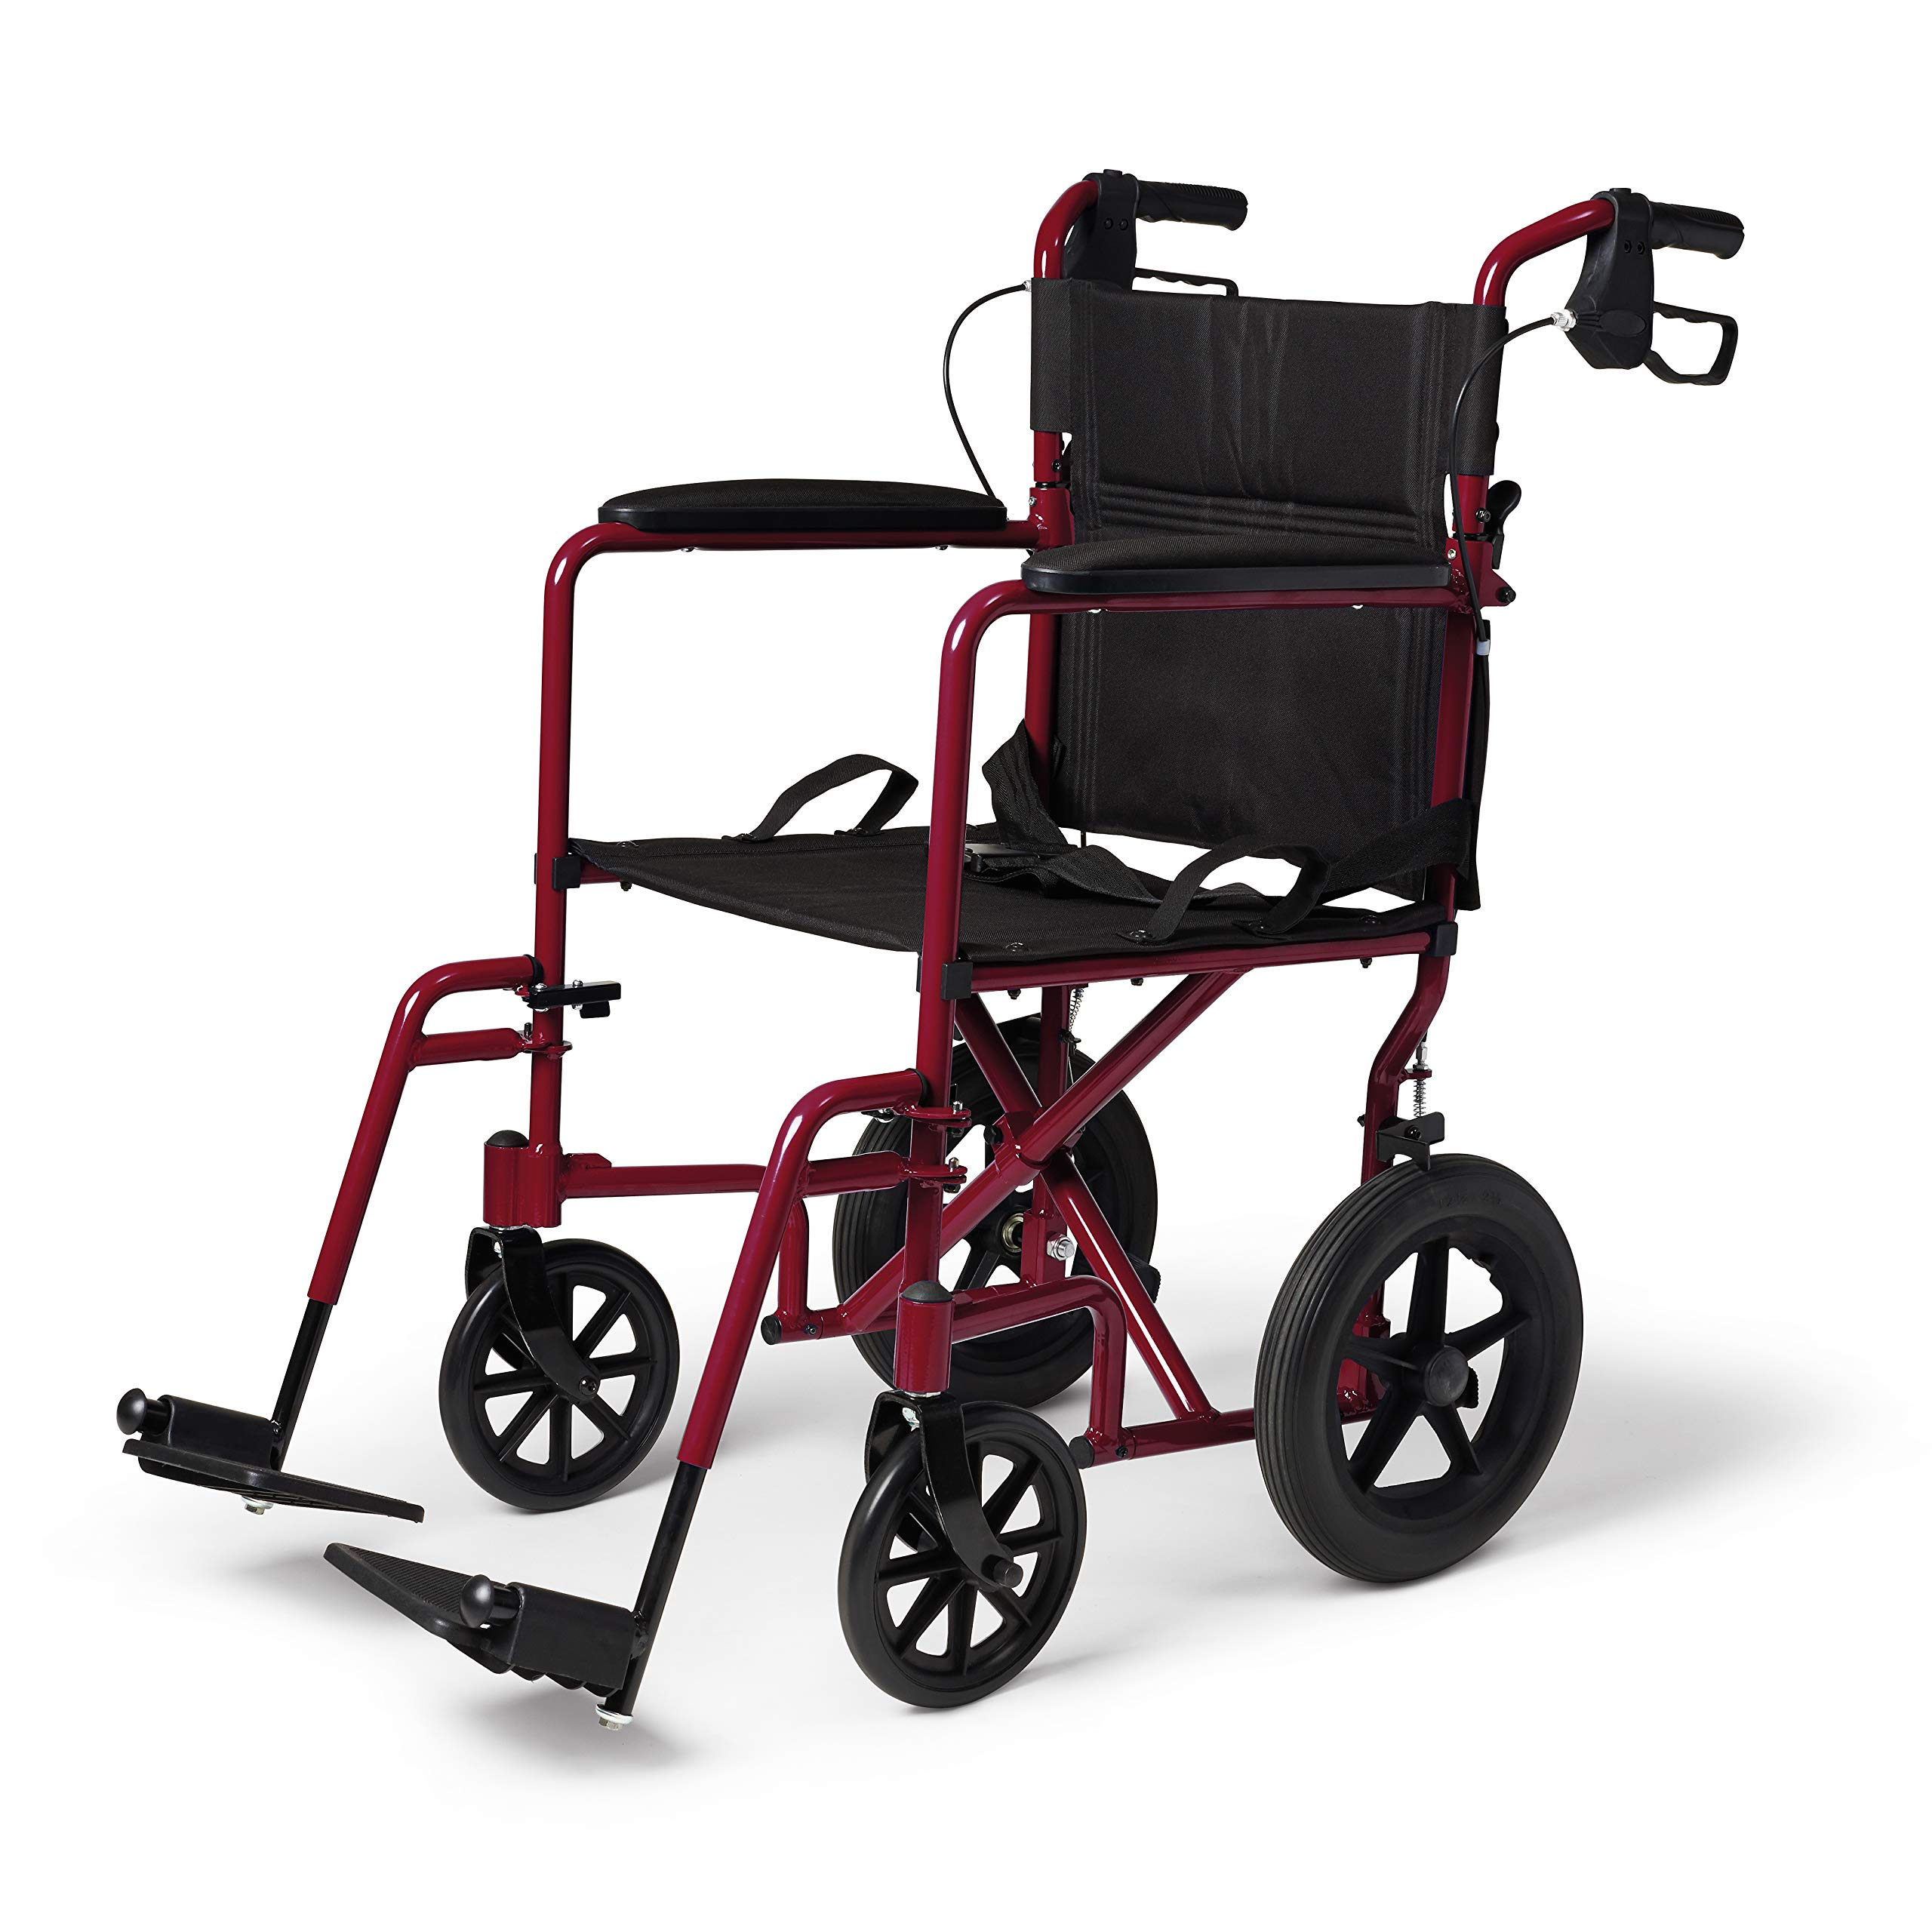 Medline Lightweight Transport Adult Folding Wheelchair with Handbrakes, Red by Medline